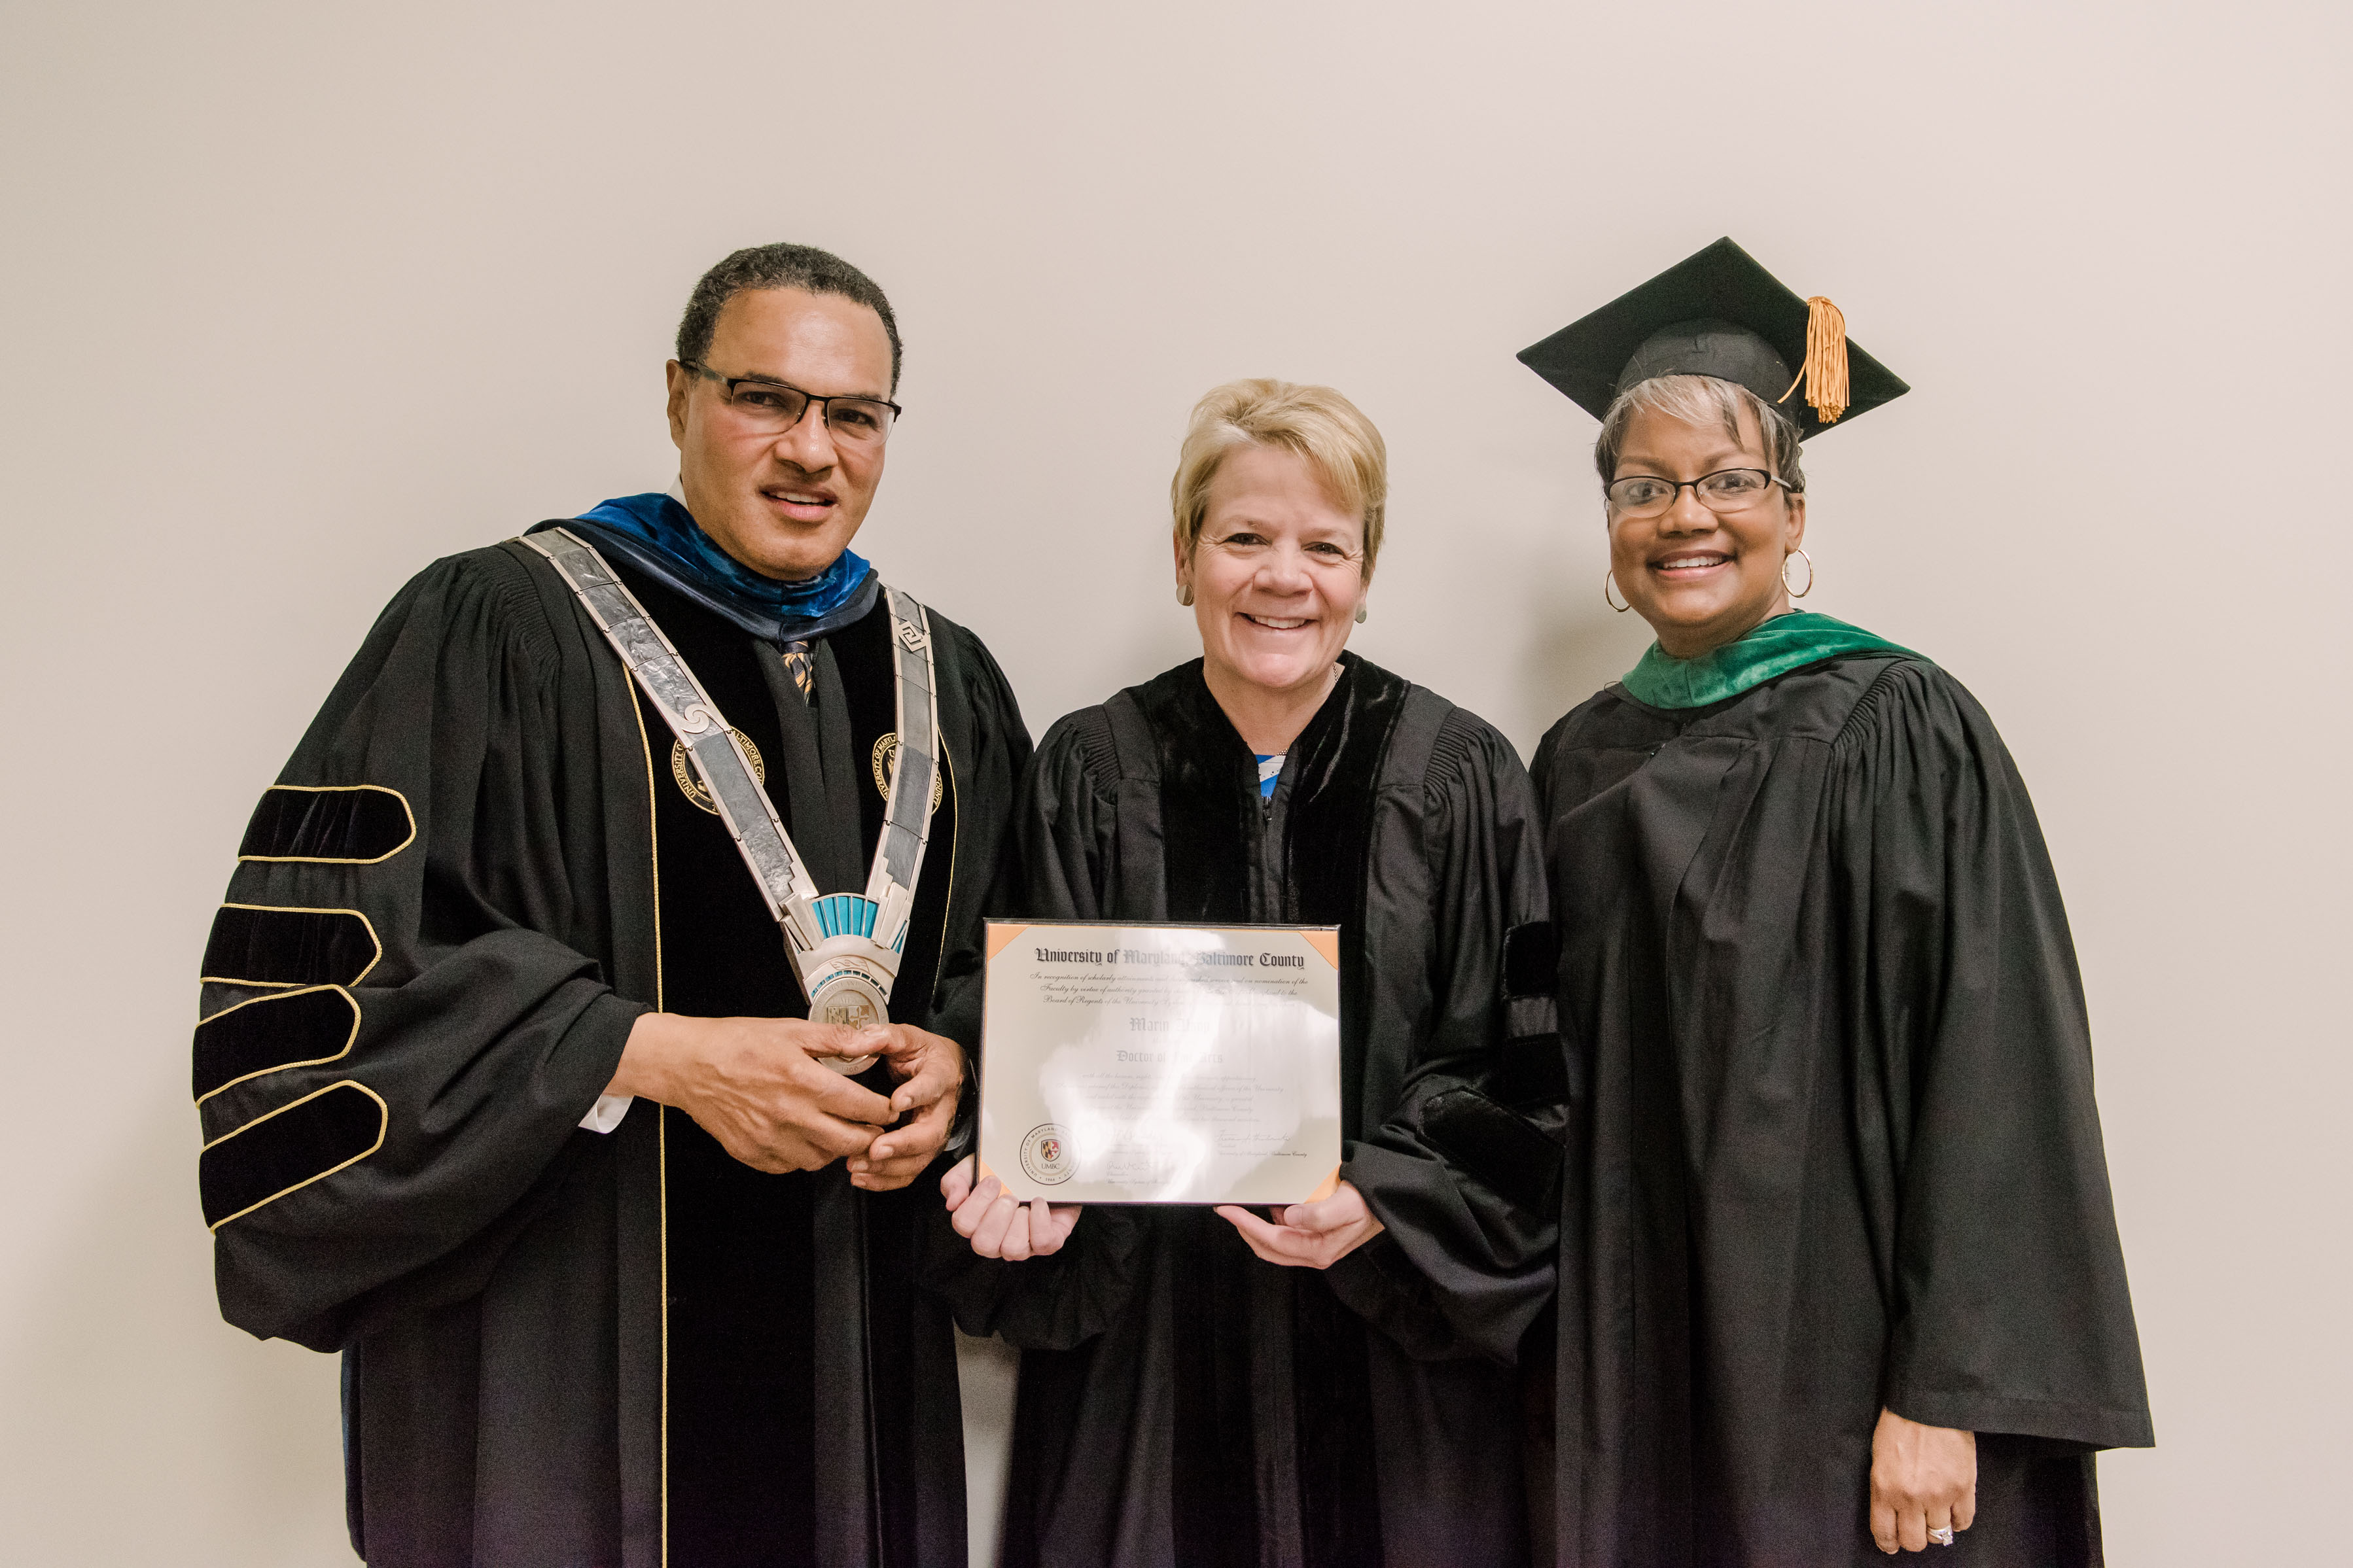 Hrabowski poses with two others in graduation regalia